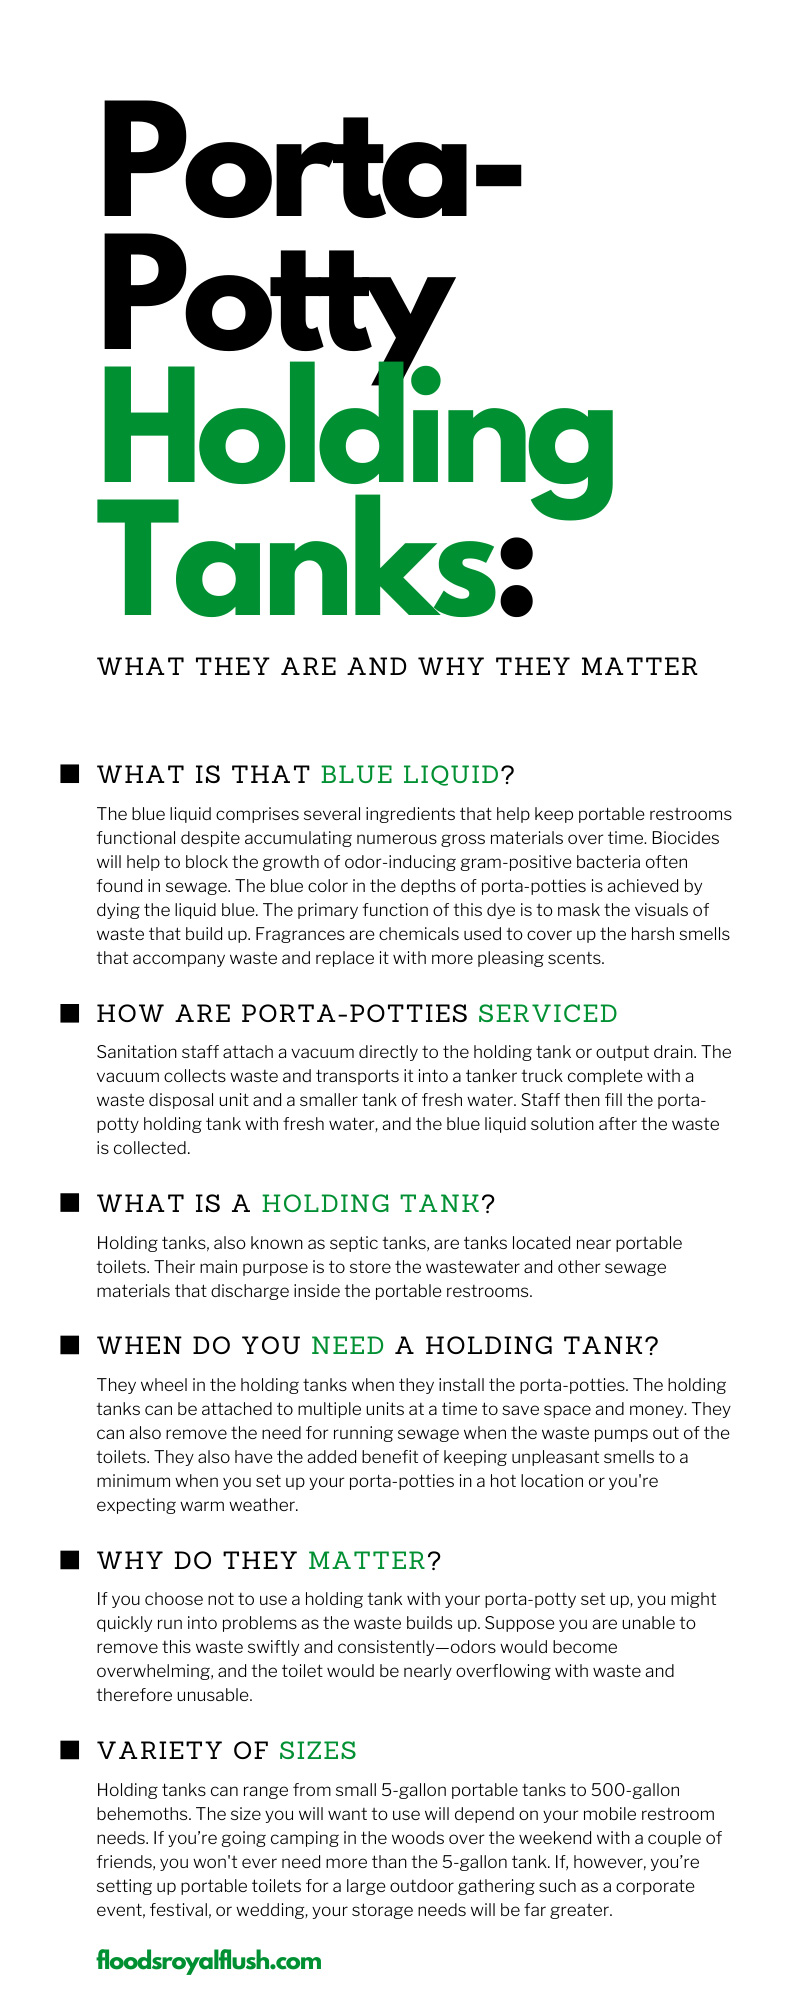 Porta-Potty Holding Tanks: What They Are and Why They Matter